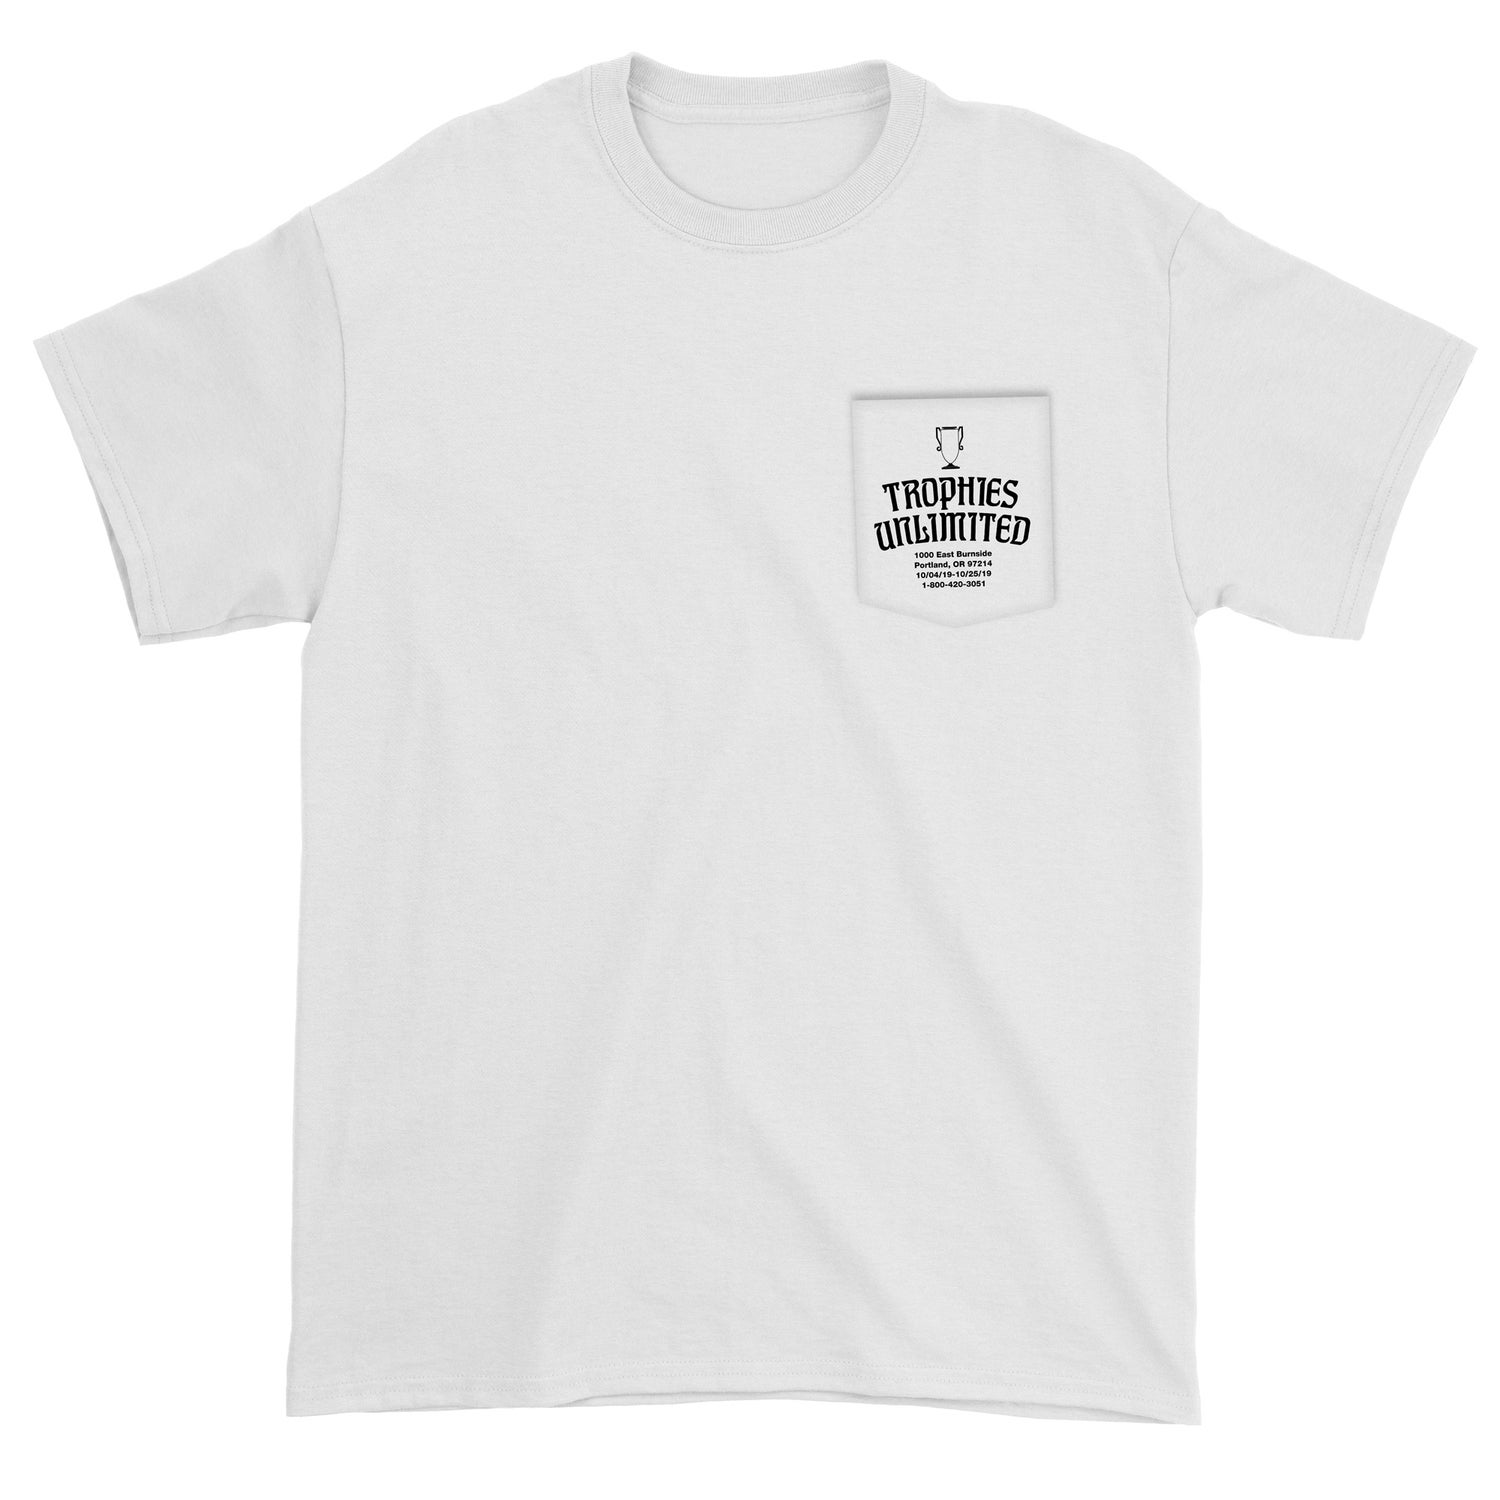 Image of Trophies Unlimited Short Sleeve Pocket Tee